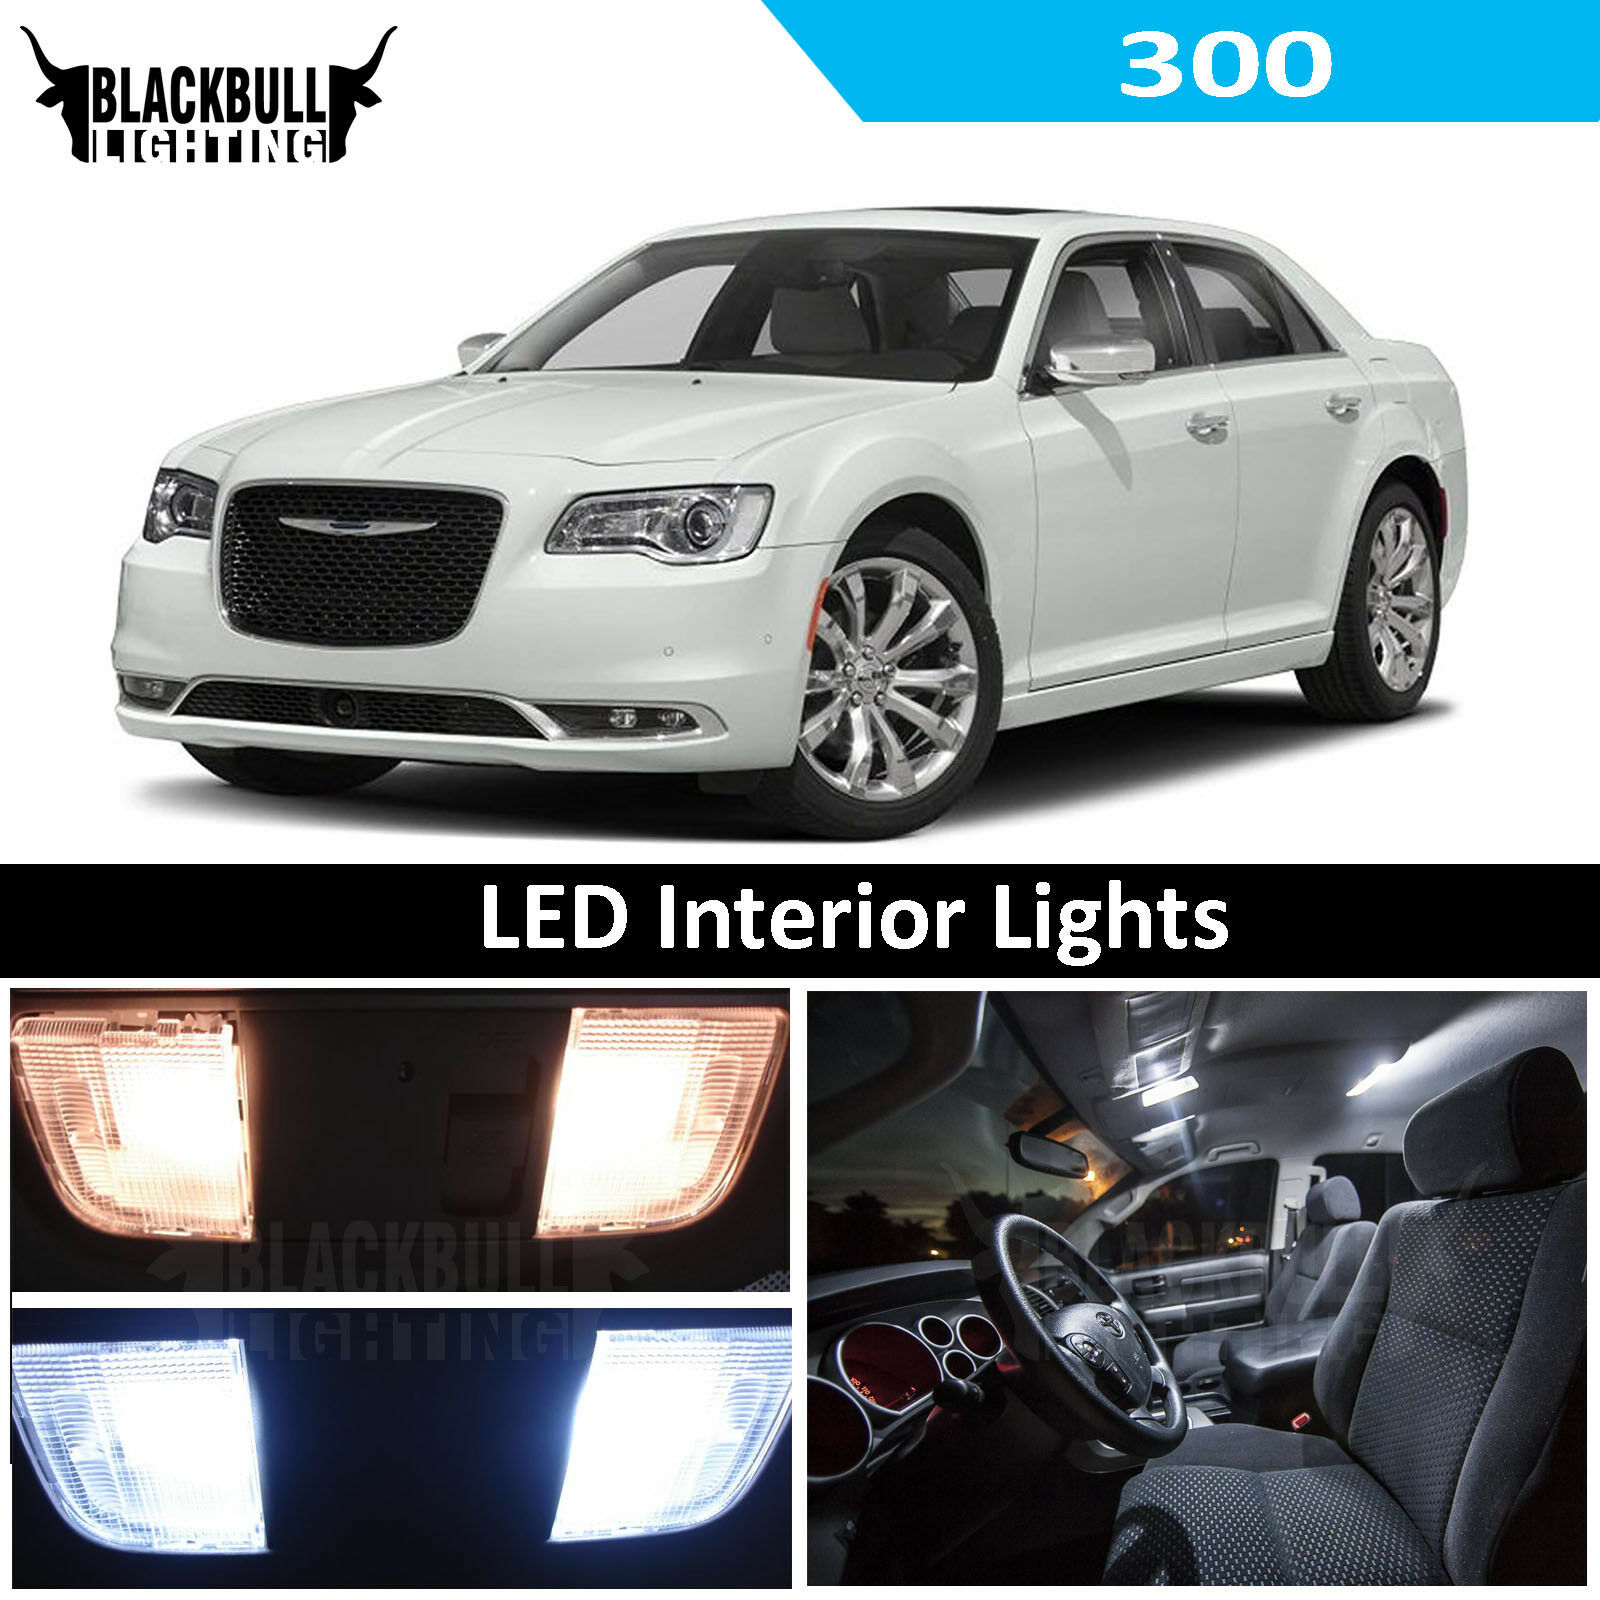 White Chrysler 300 >> Details About Fits 2015 2018 Chrysler 300 White Led Interior Lights Accessory Replacement Kit